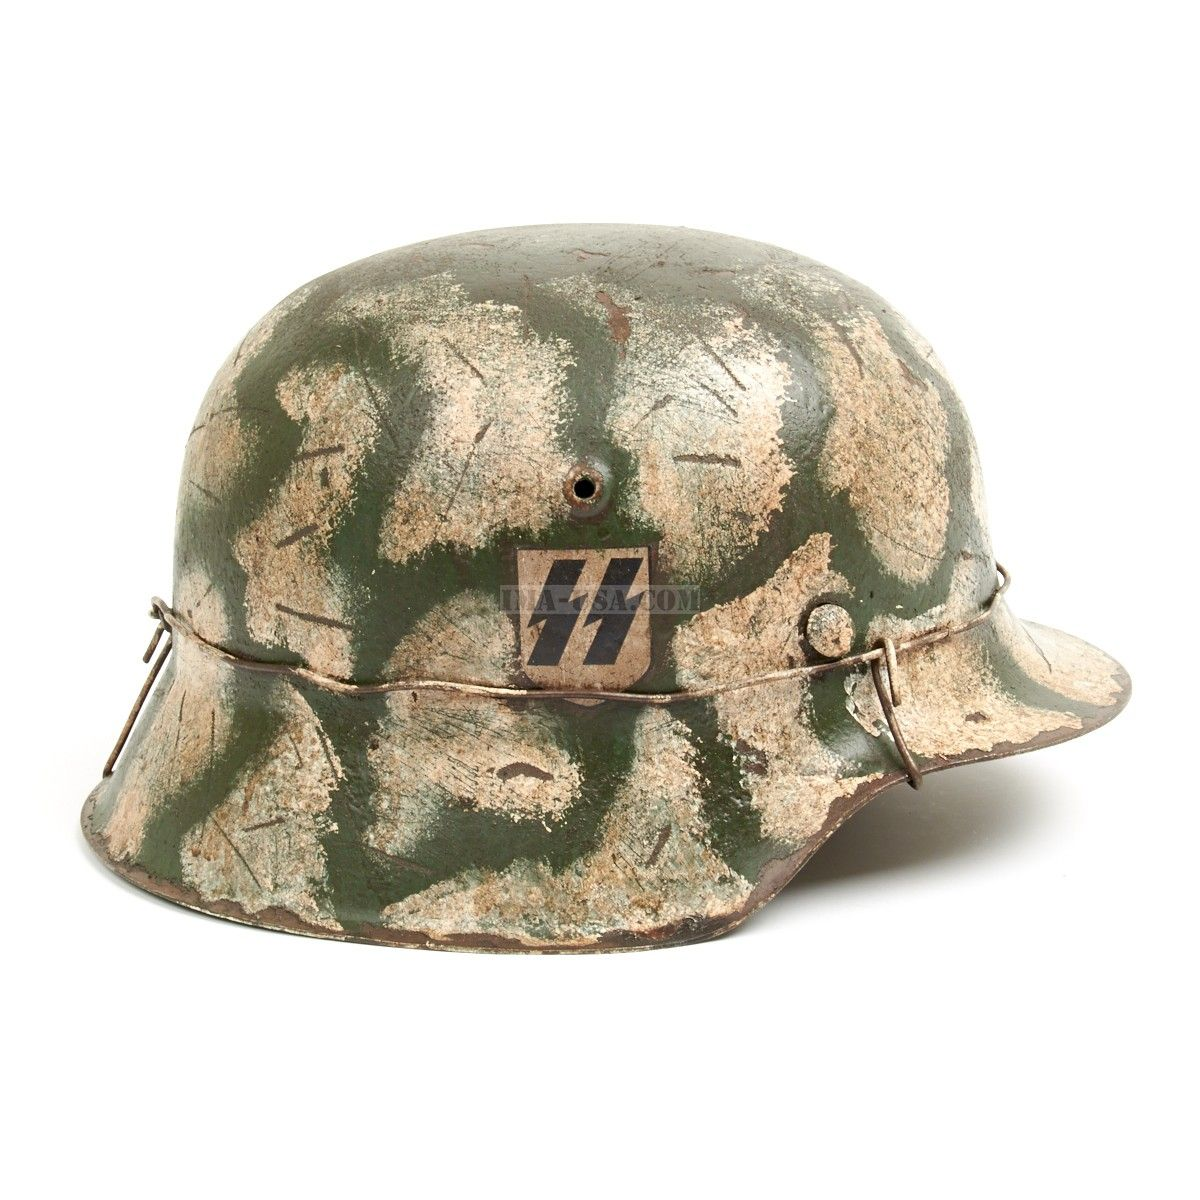 Original German WWII M42 Refurbished Leningrad Winter Helmet